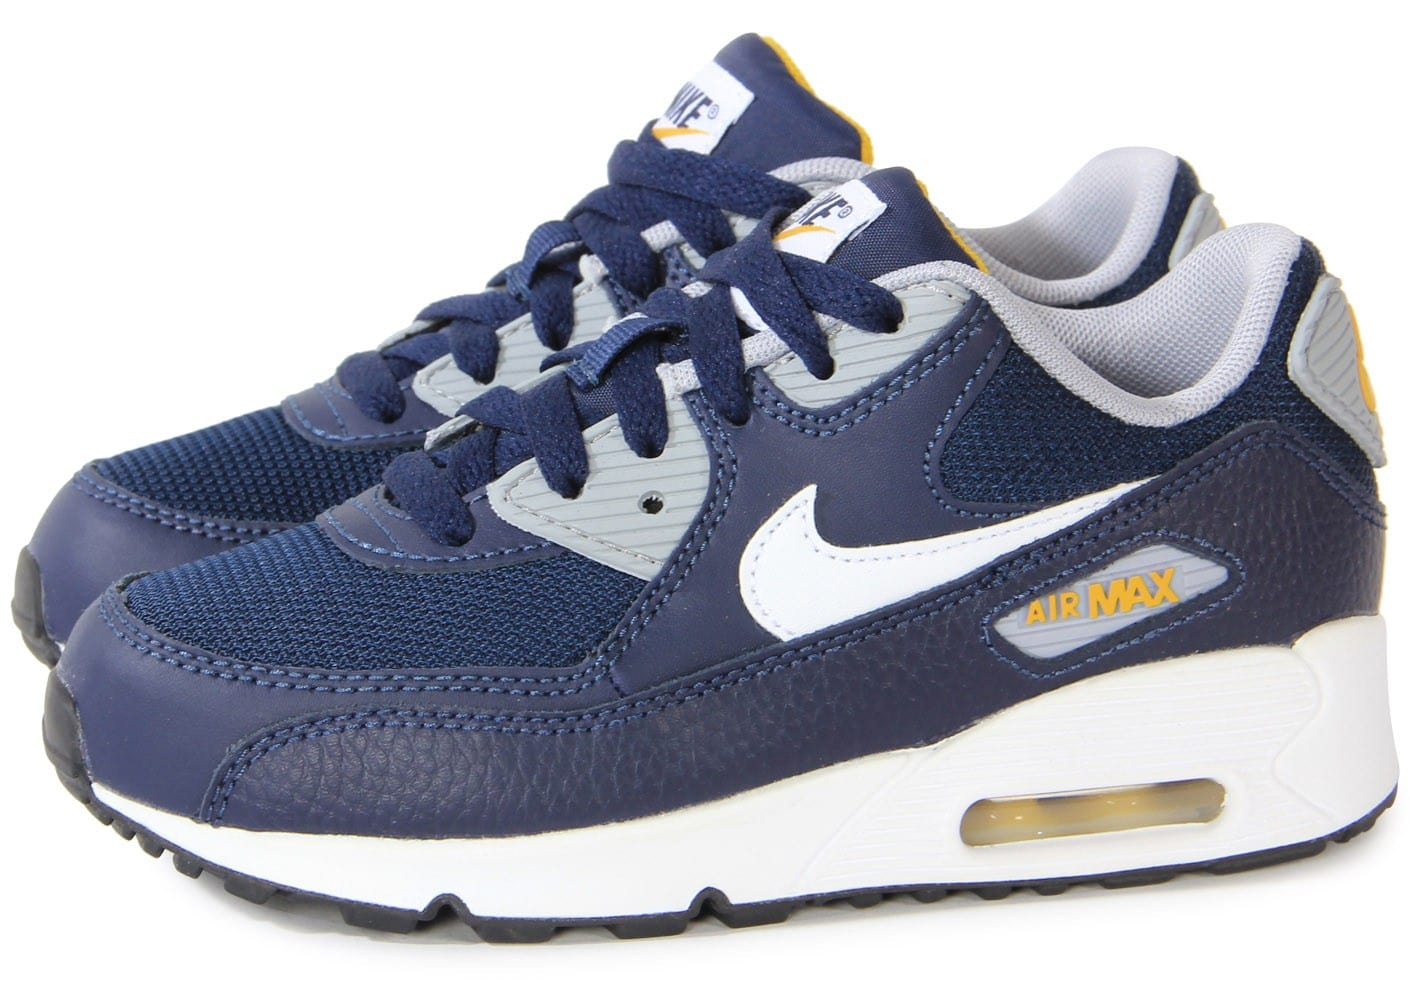 nike air max 90 enfant obsidian chaussures chaussures chausport. Black Bedroom Furniture Sets. Home Design Ideas